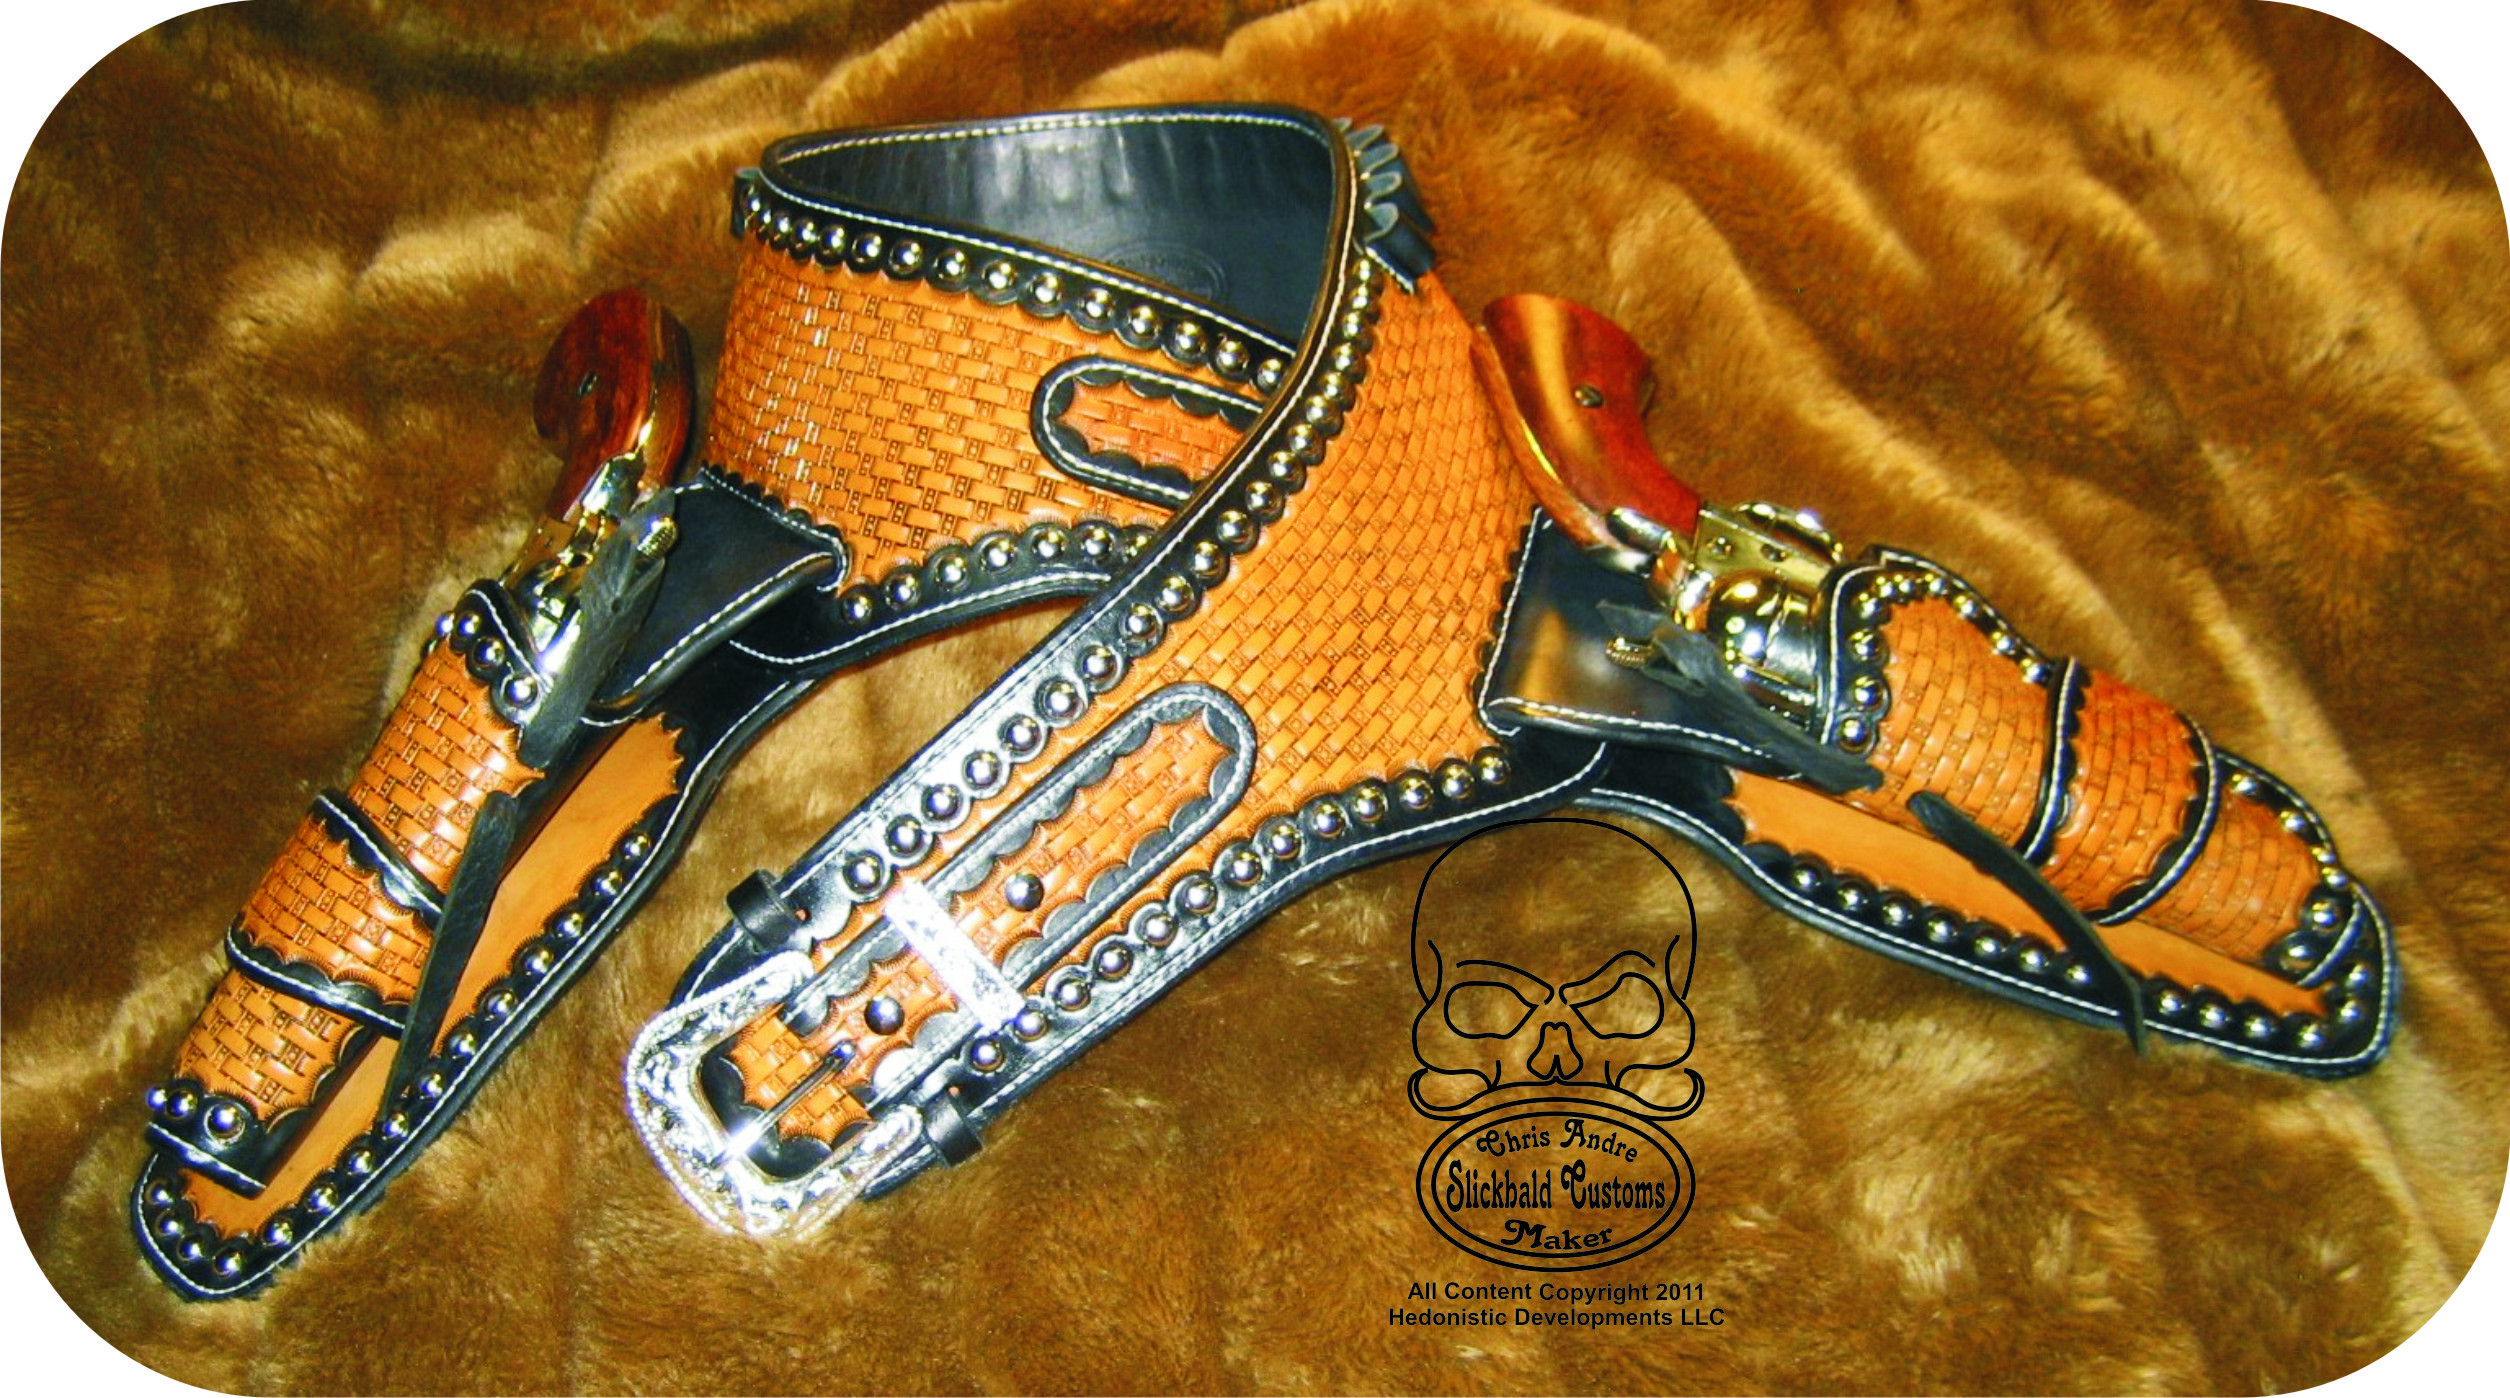 Classic Black & Tan Hollywood Buscadero with nickel spots